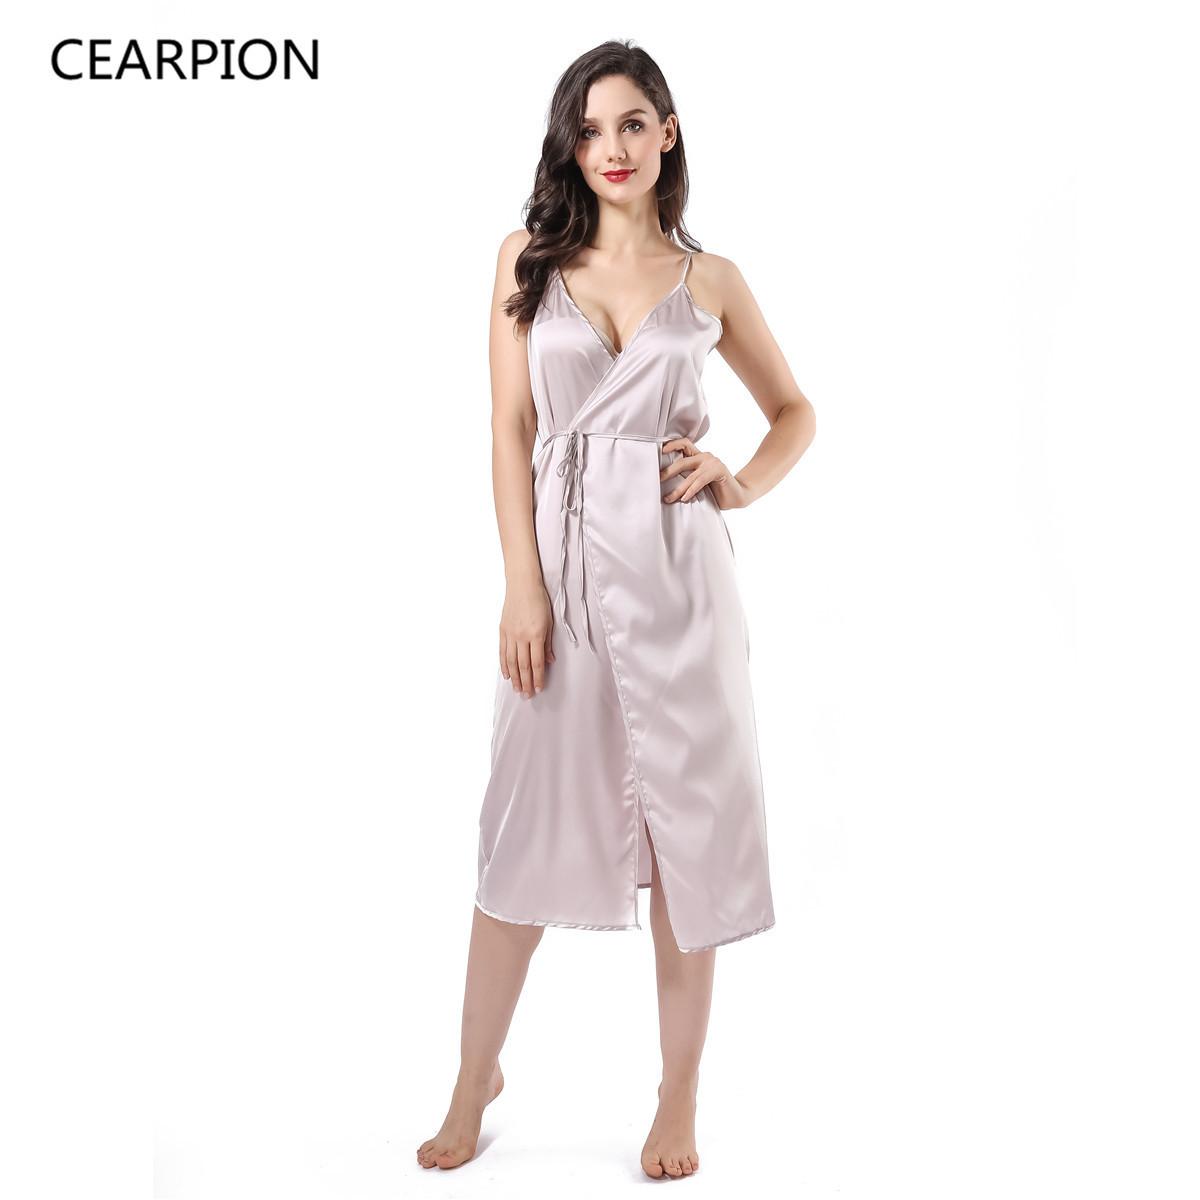 CEARPION Long Sexy Nightgown Rayon Nightwear Lady Nightdress Suspender Skirt Sleepwear Spaghetti Strap Home Dress Gown Nightie